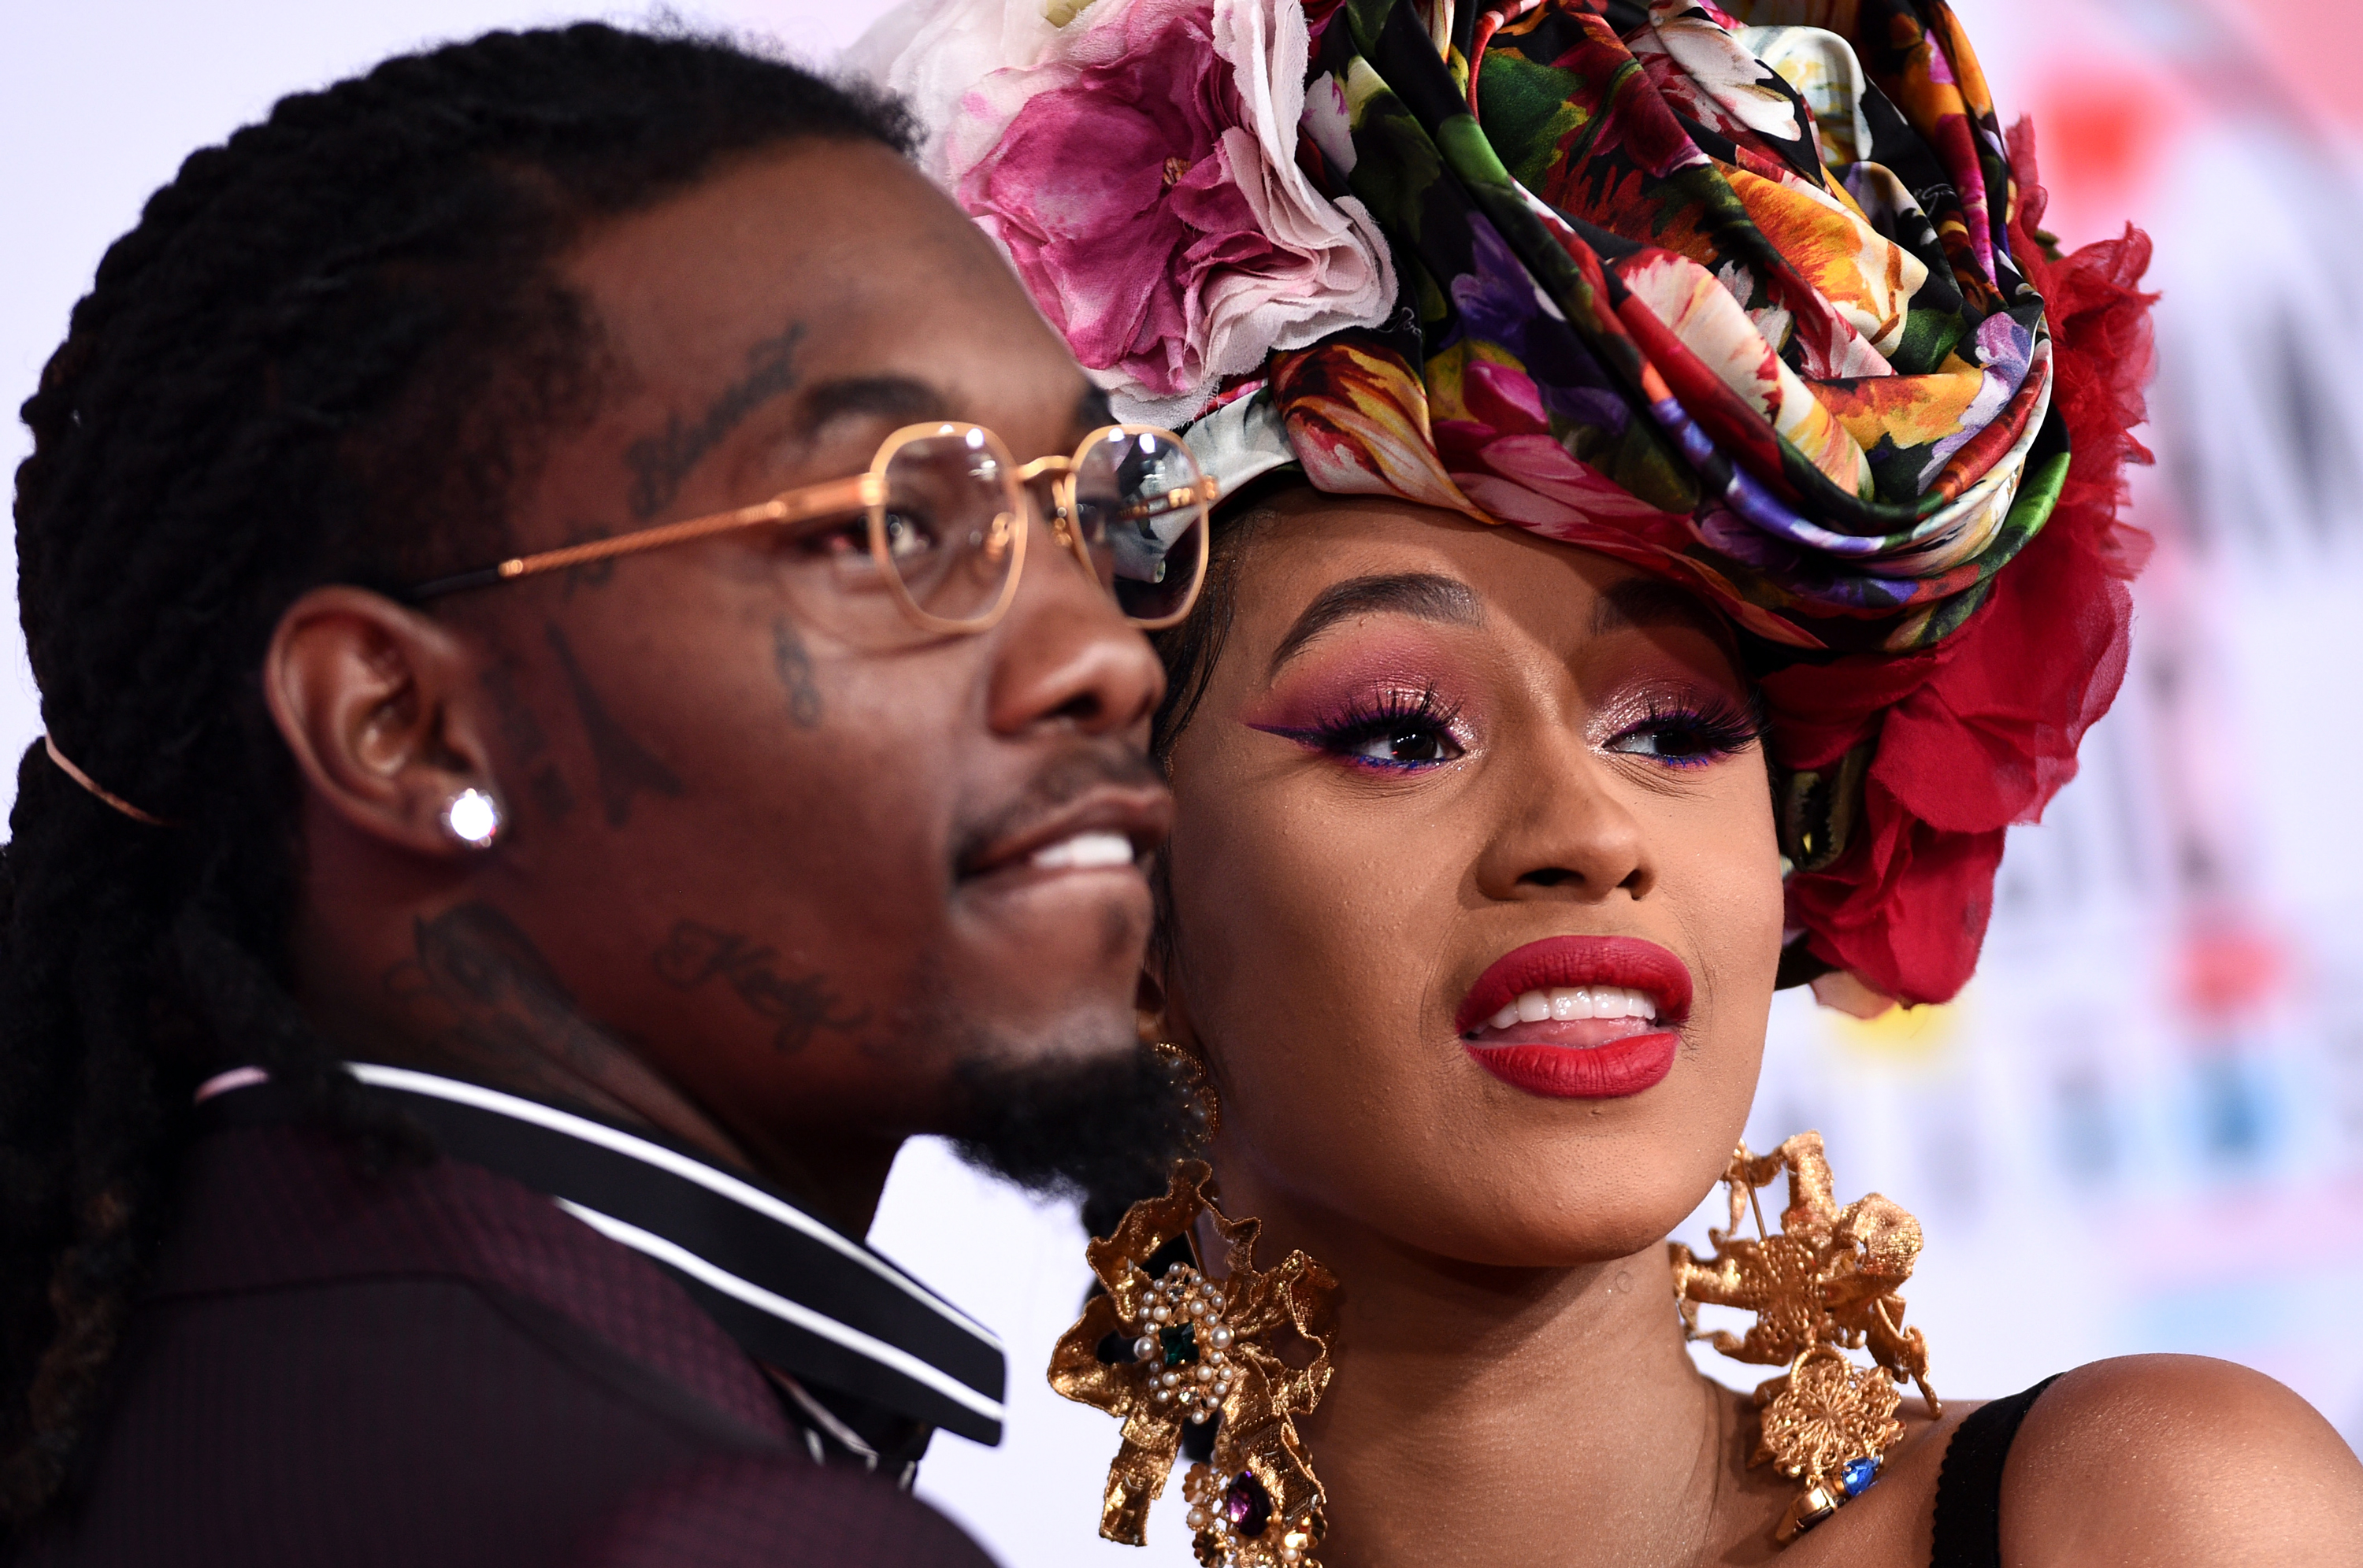 Cardi B Announces Split With Offset Rolling Stone